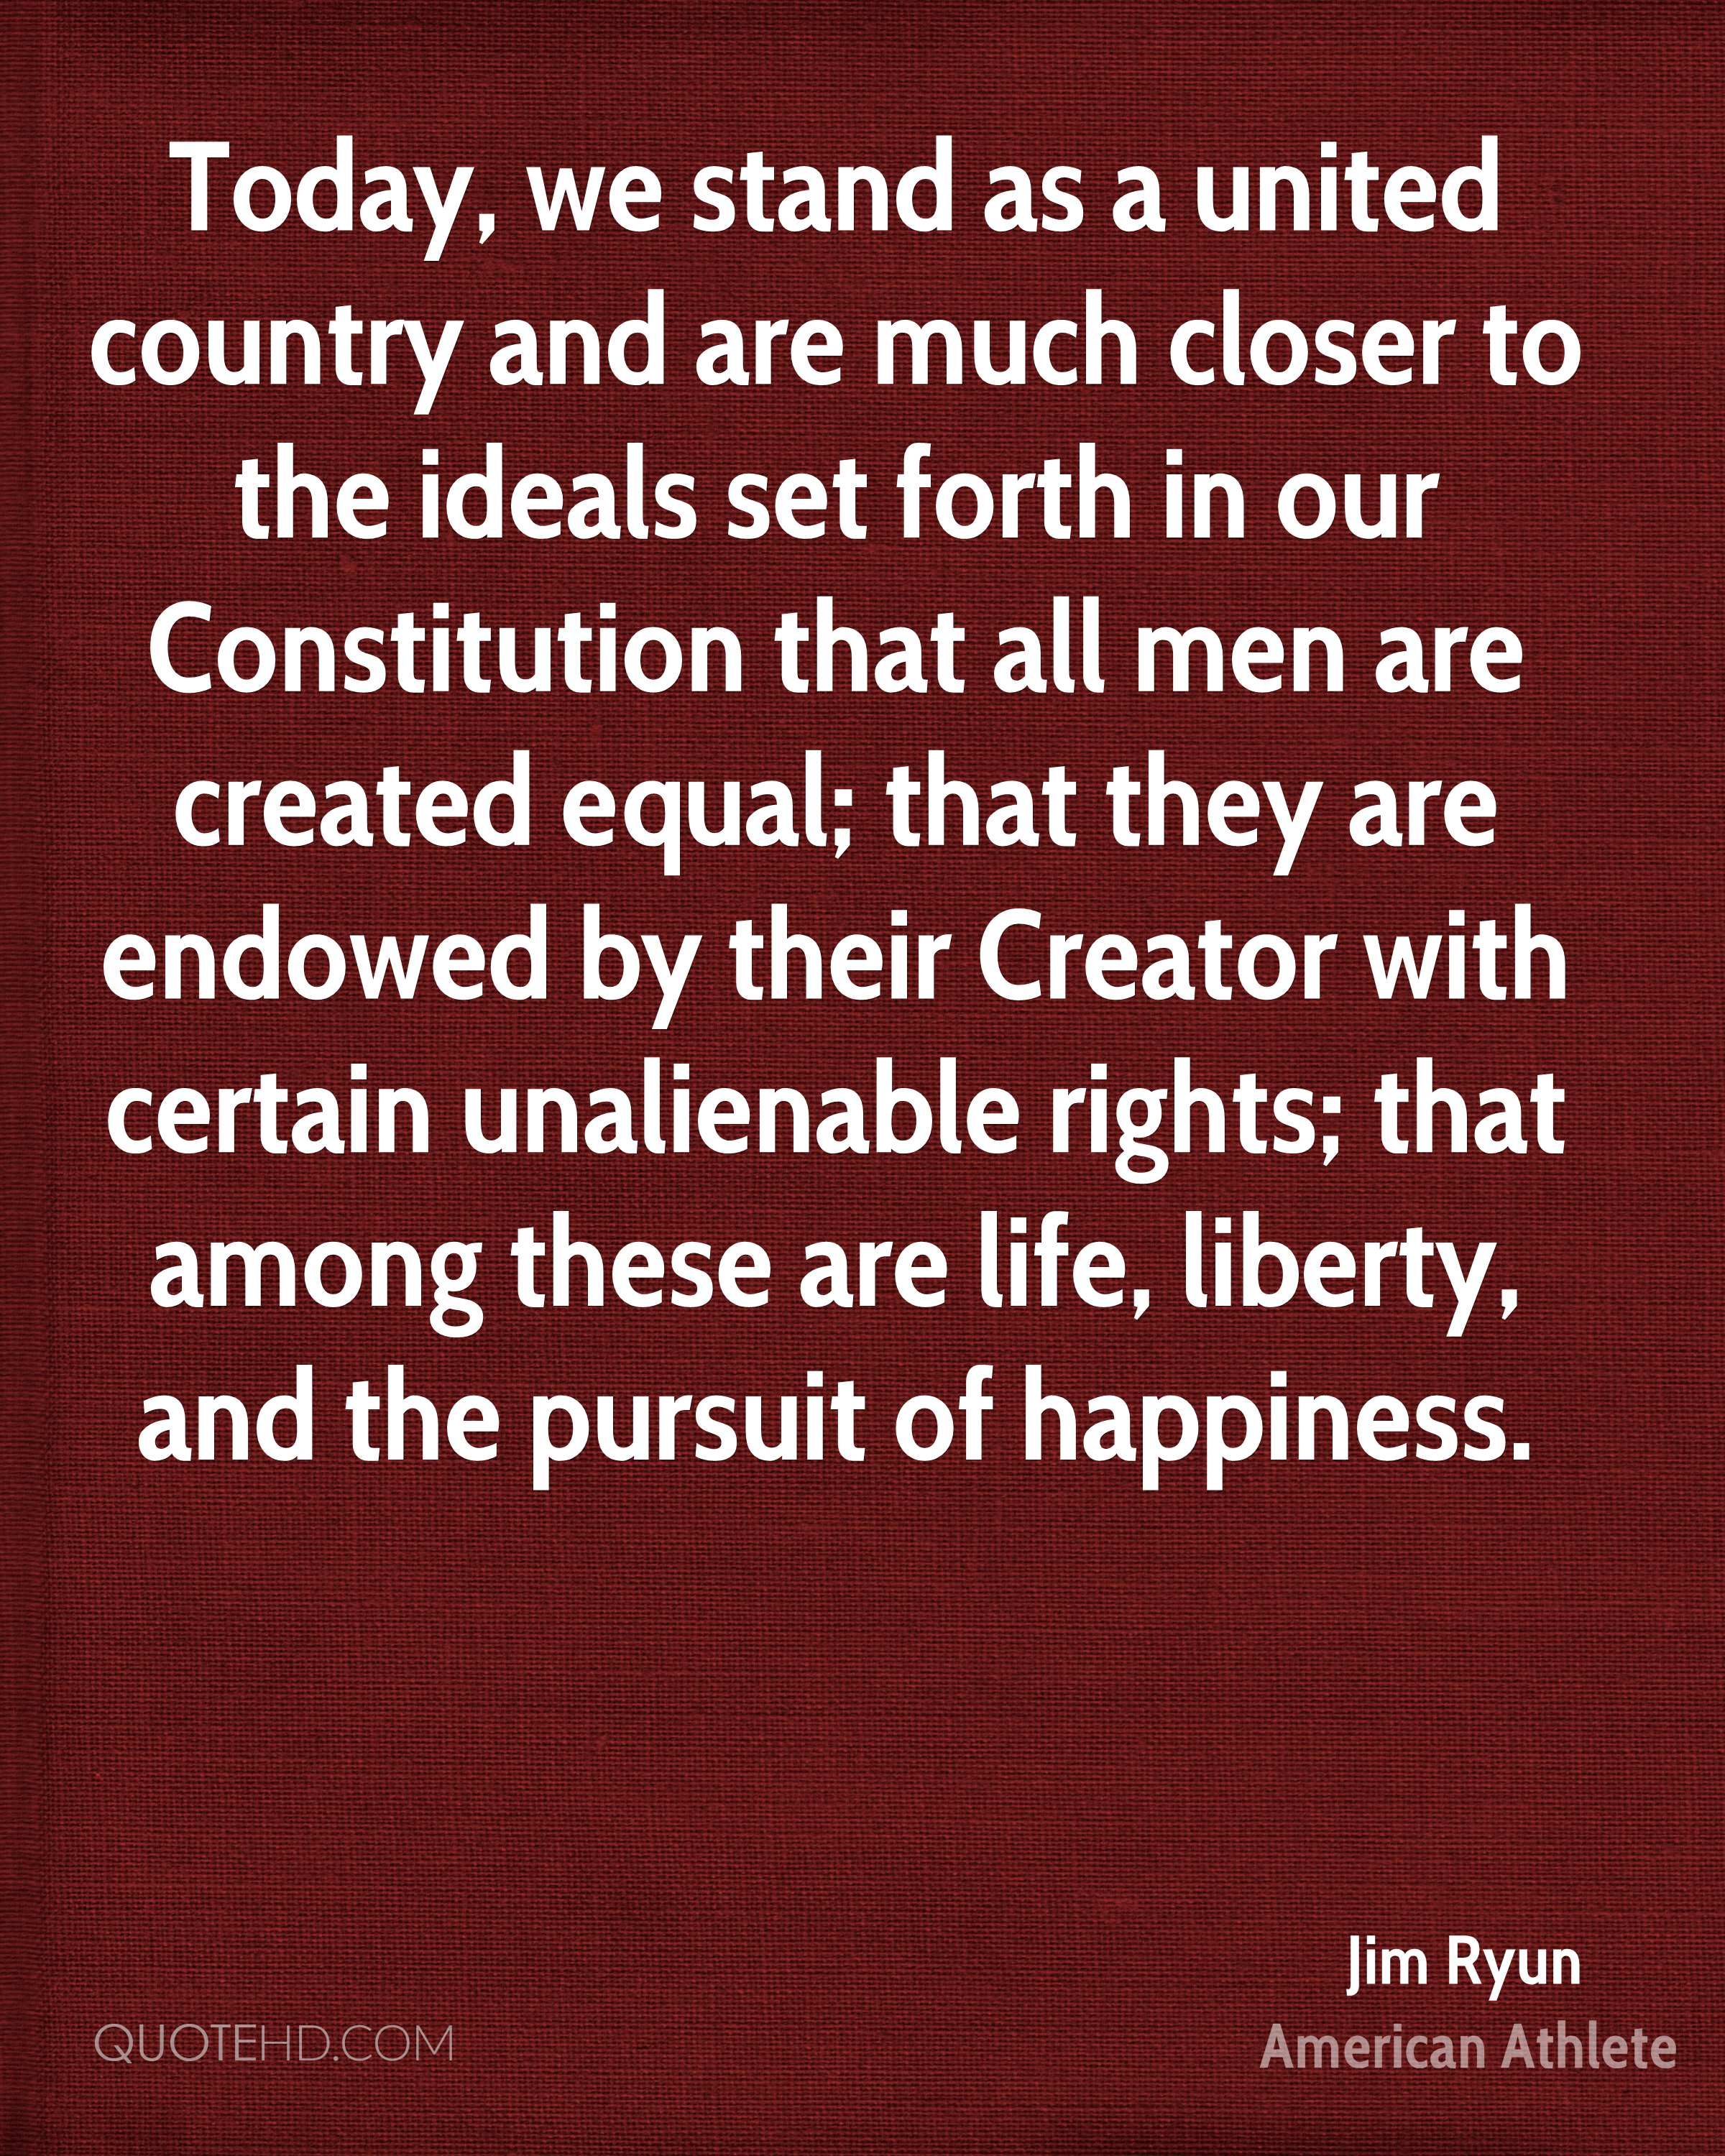 Today, we stand as a united country and are much closer to the ideals set forth in our Constitution that all men are created equal; that they are endowed by their Creator with certain unalienable rights; that among these are life, liberty, and the pursuit of happiness.